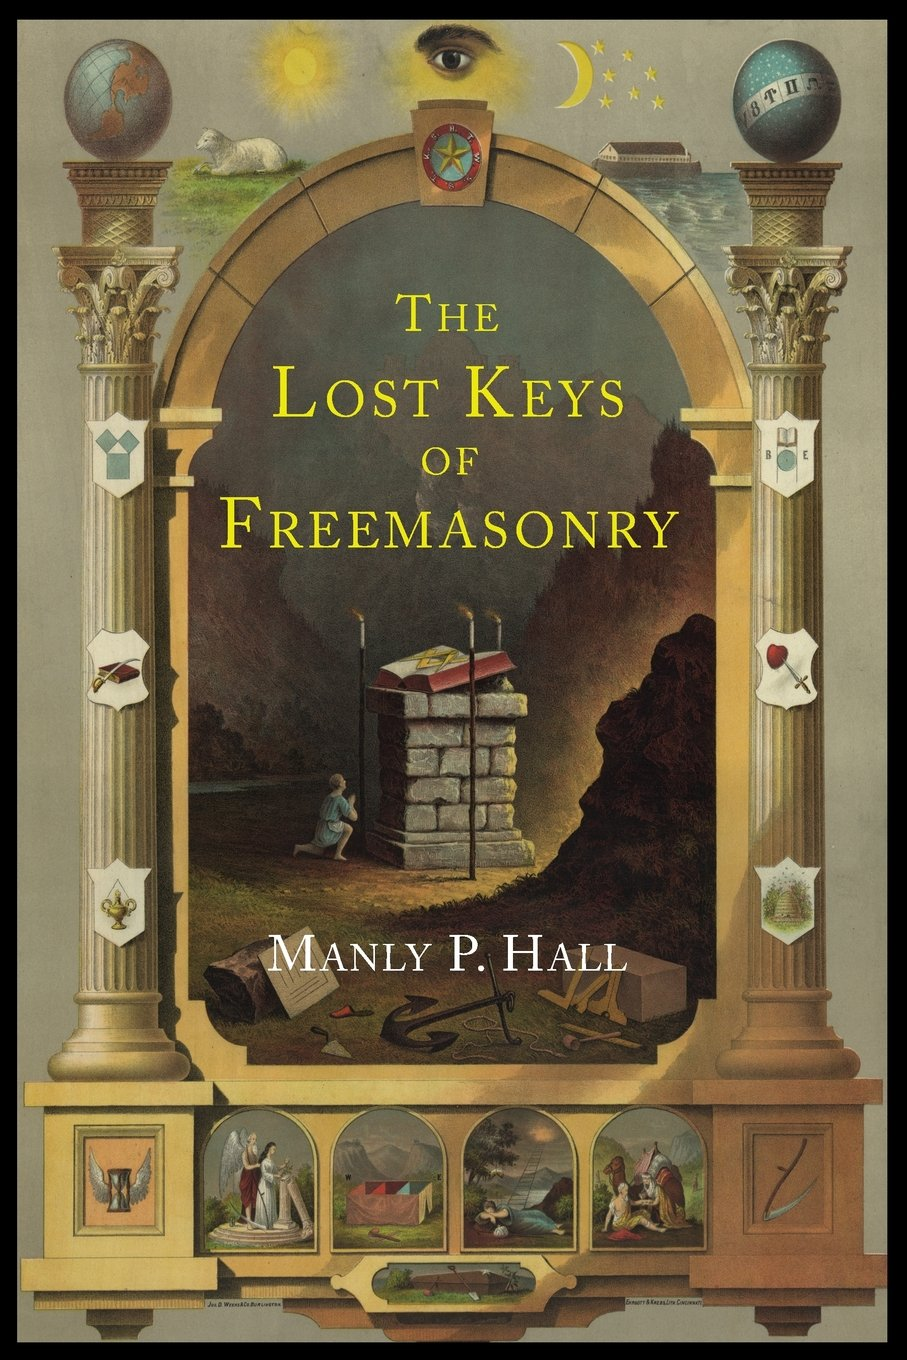 The lost keys of freemasonry the legend of hiram abiff manly p the lost keys of freemasonry the legend of hiram abiff manly p hall 9781614274476 amazon books fandeluxe Choice Image